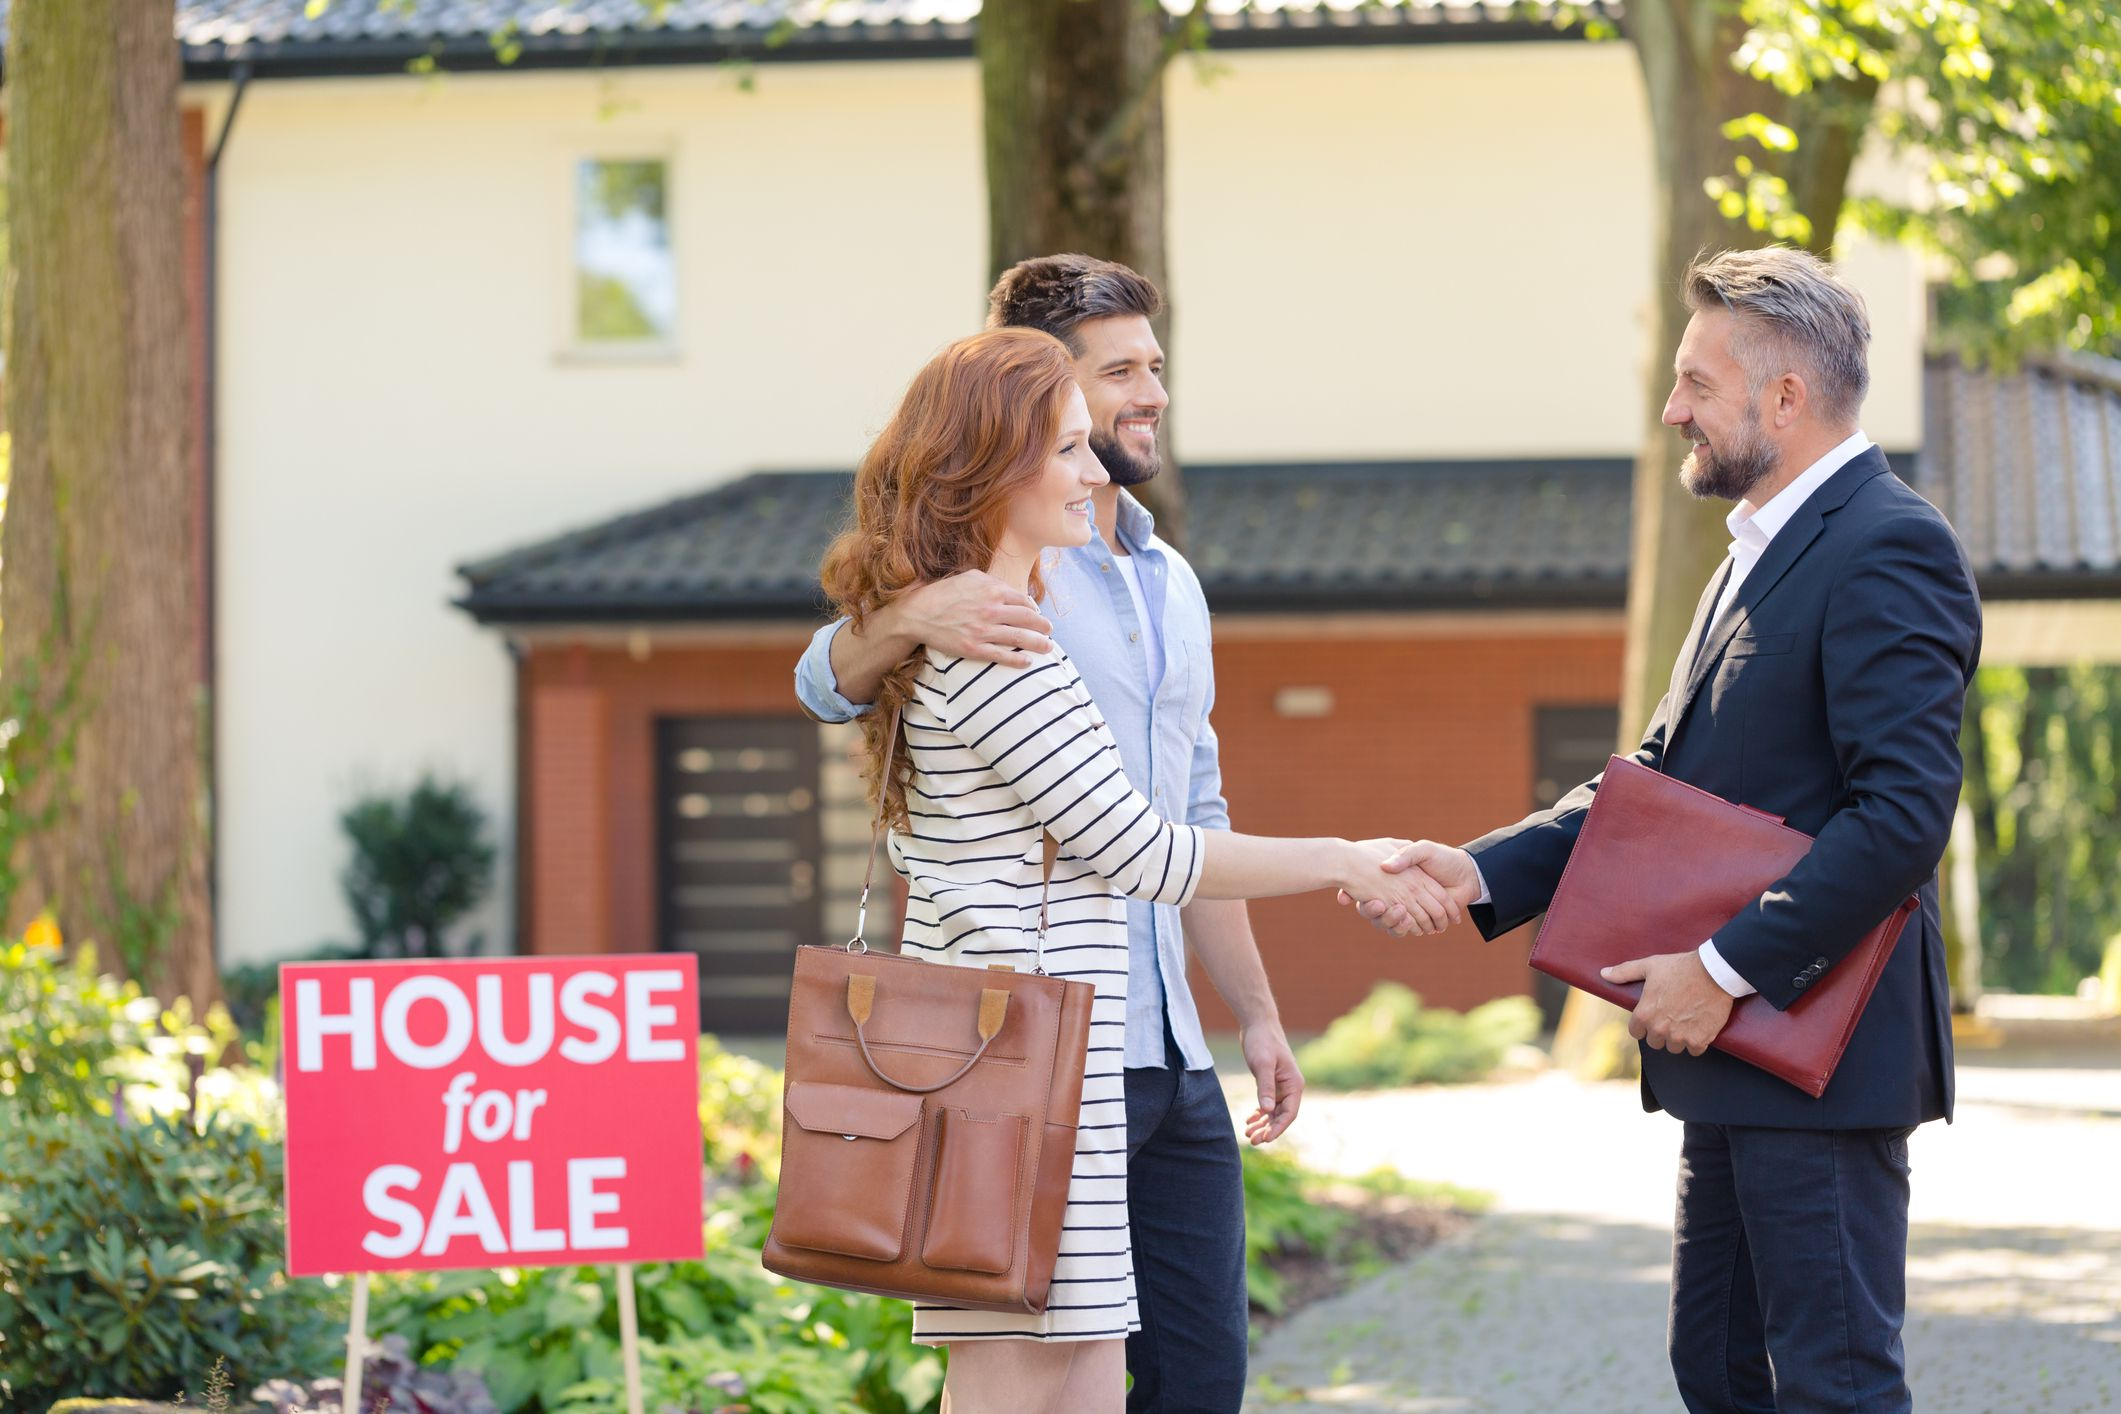 Seller congratulating a young couple buying house in suburbs